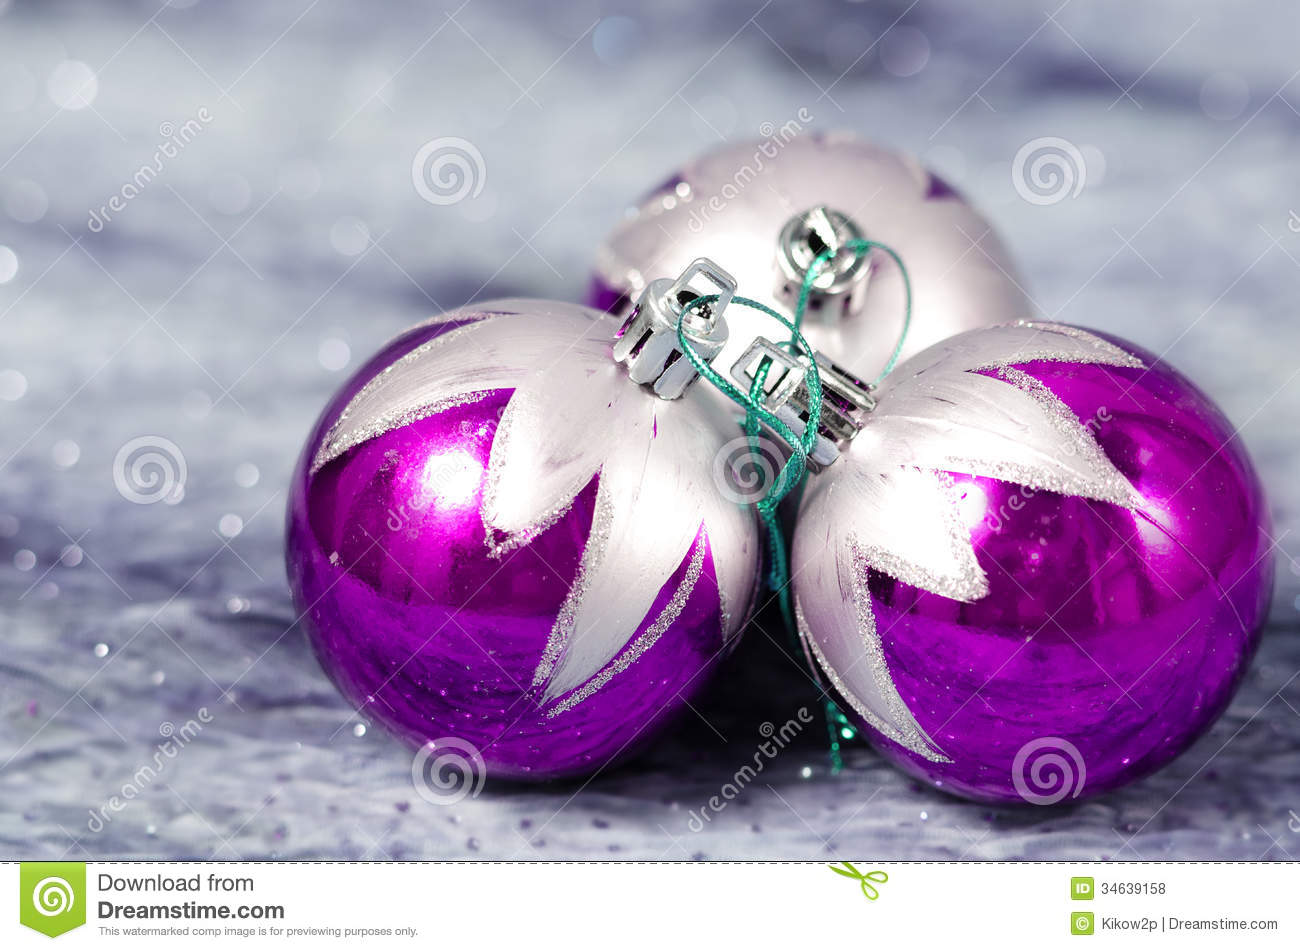 download christmas decorations purple and silver stock photo image of gray ball 34639158